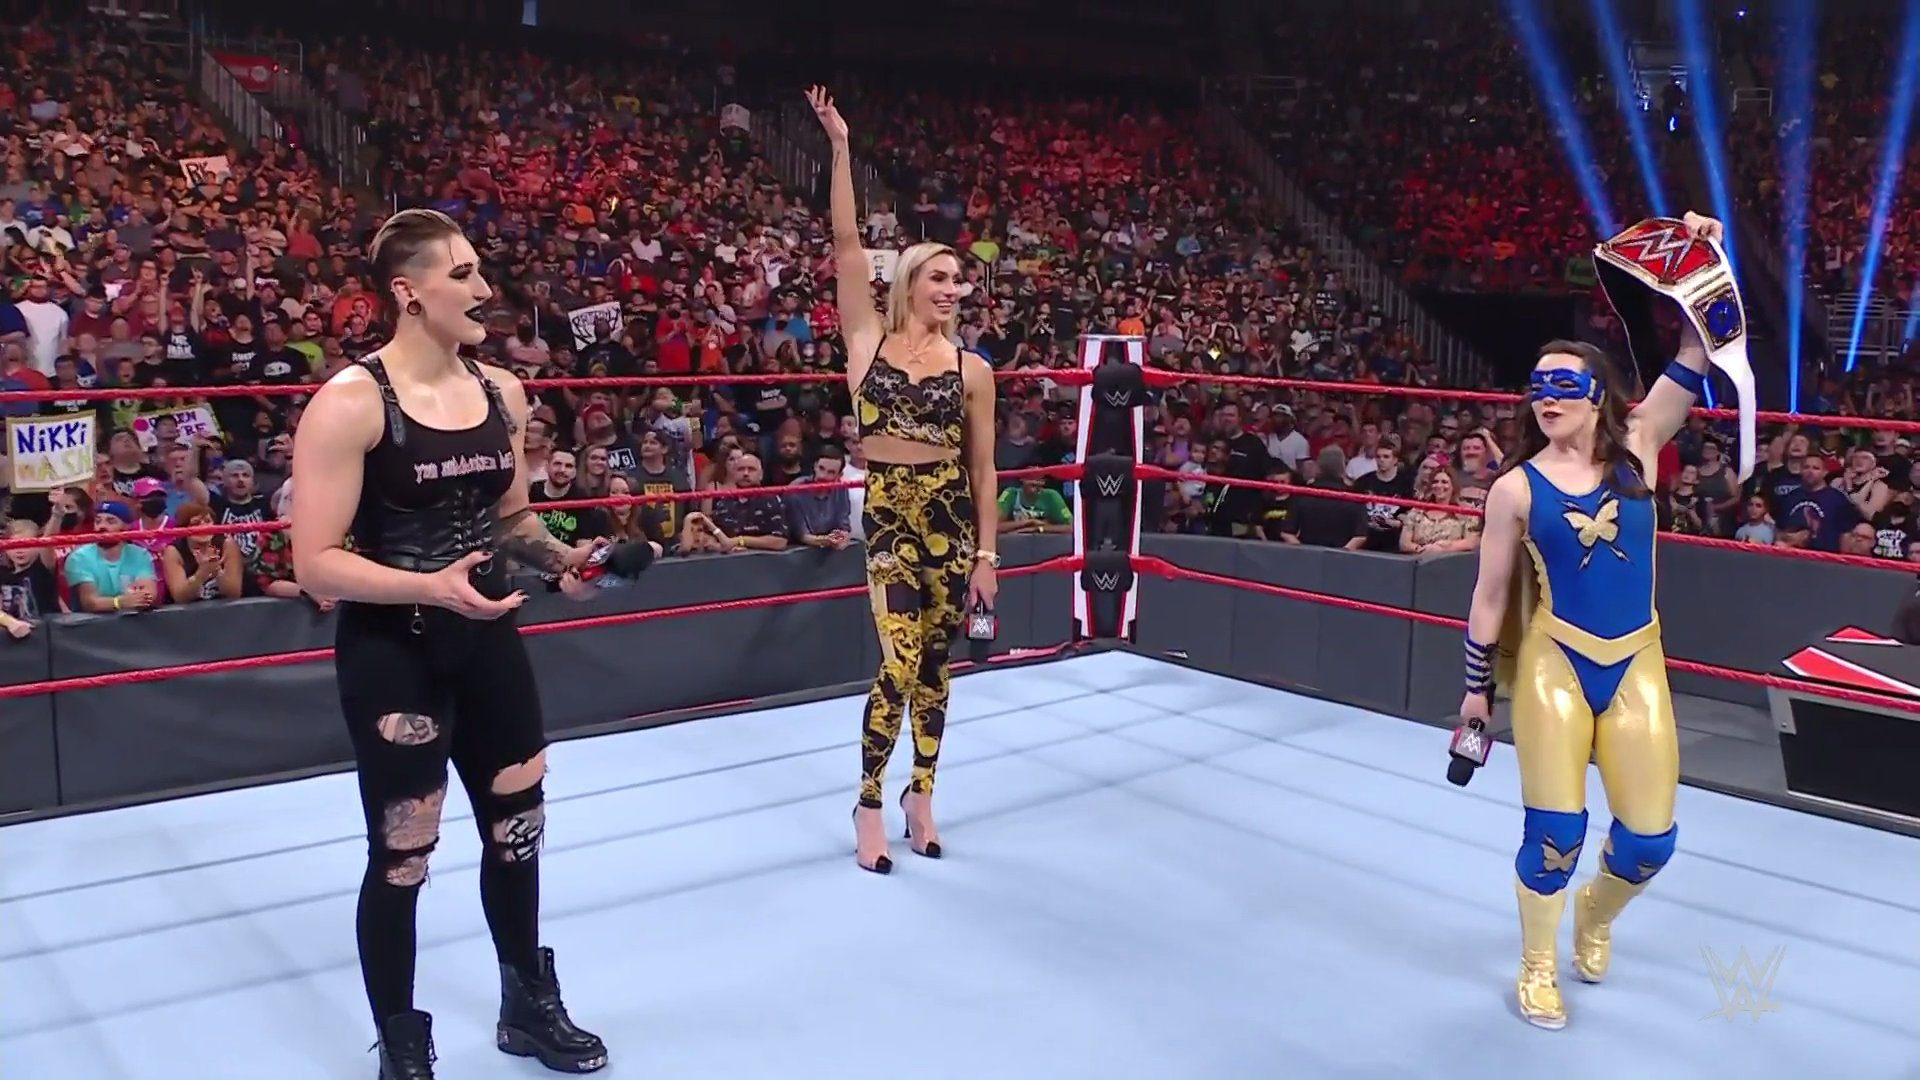 WWE Monday Night RAW Results – Handicap Match, Charlotte Flair Vs. Nikki A.S.H., More